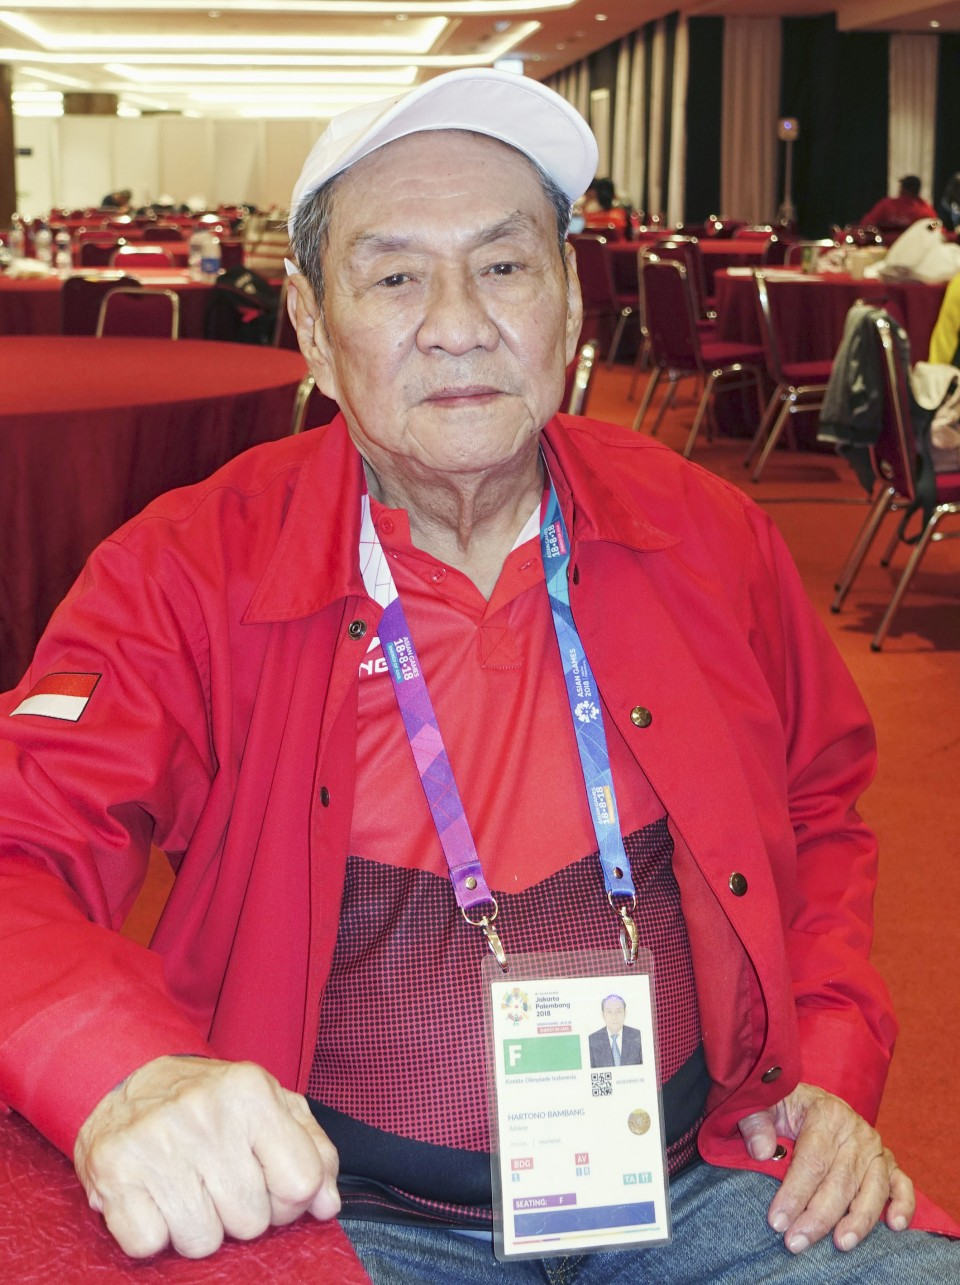 Tycoon, octogenarians compete as bridge makes silent Asian ...